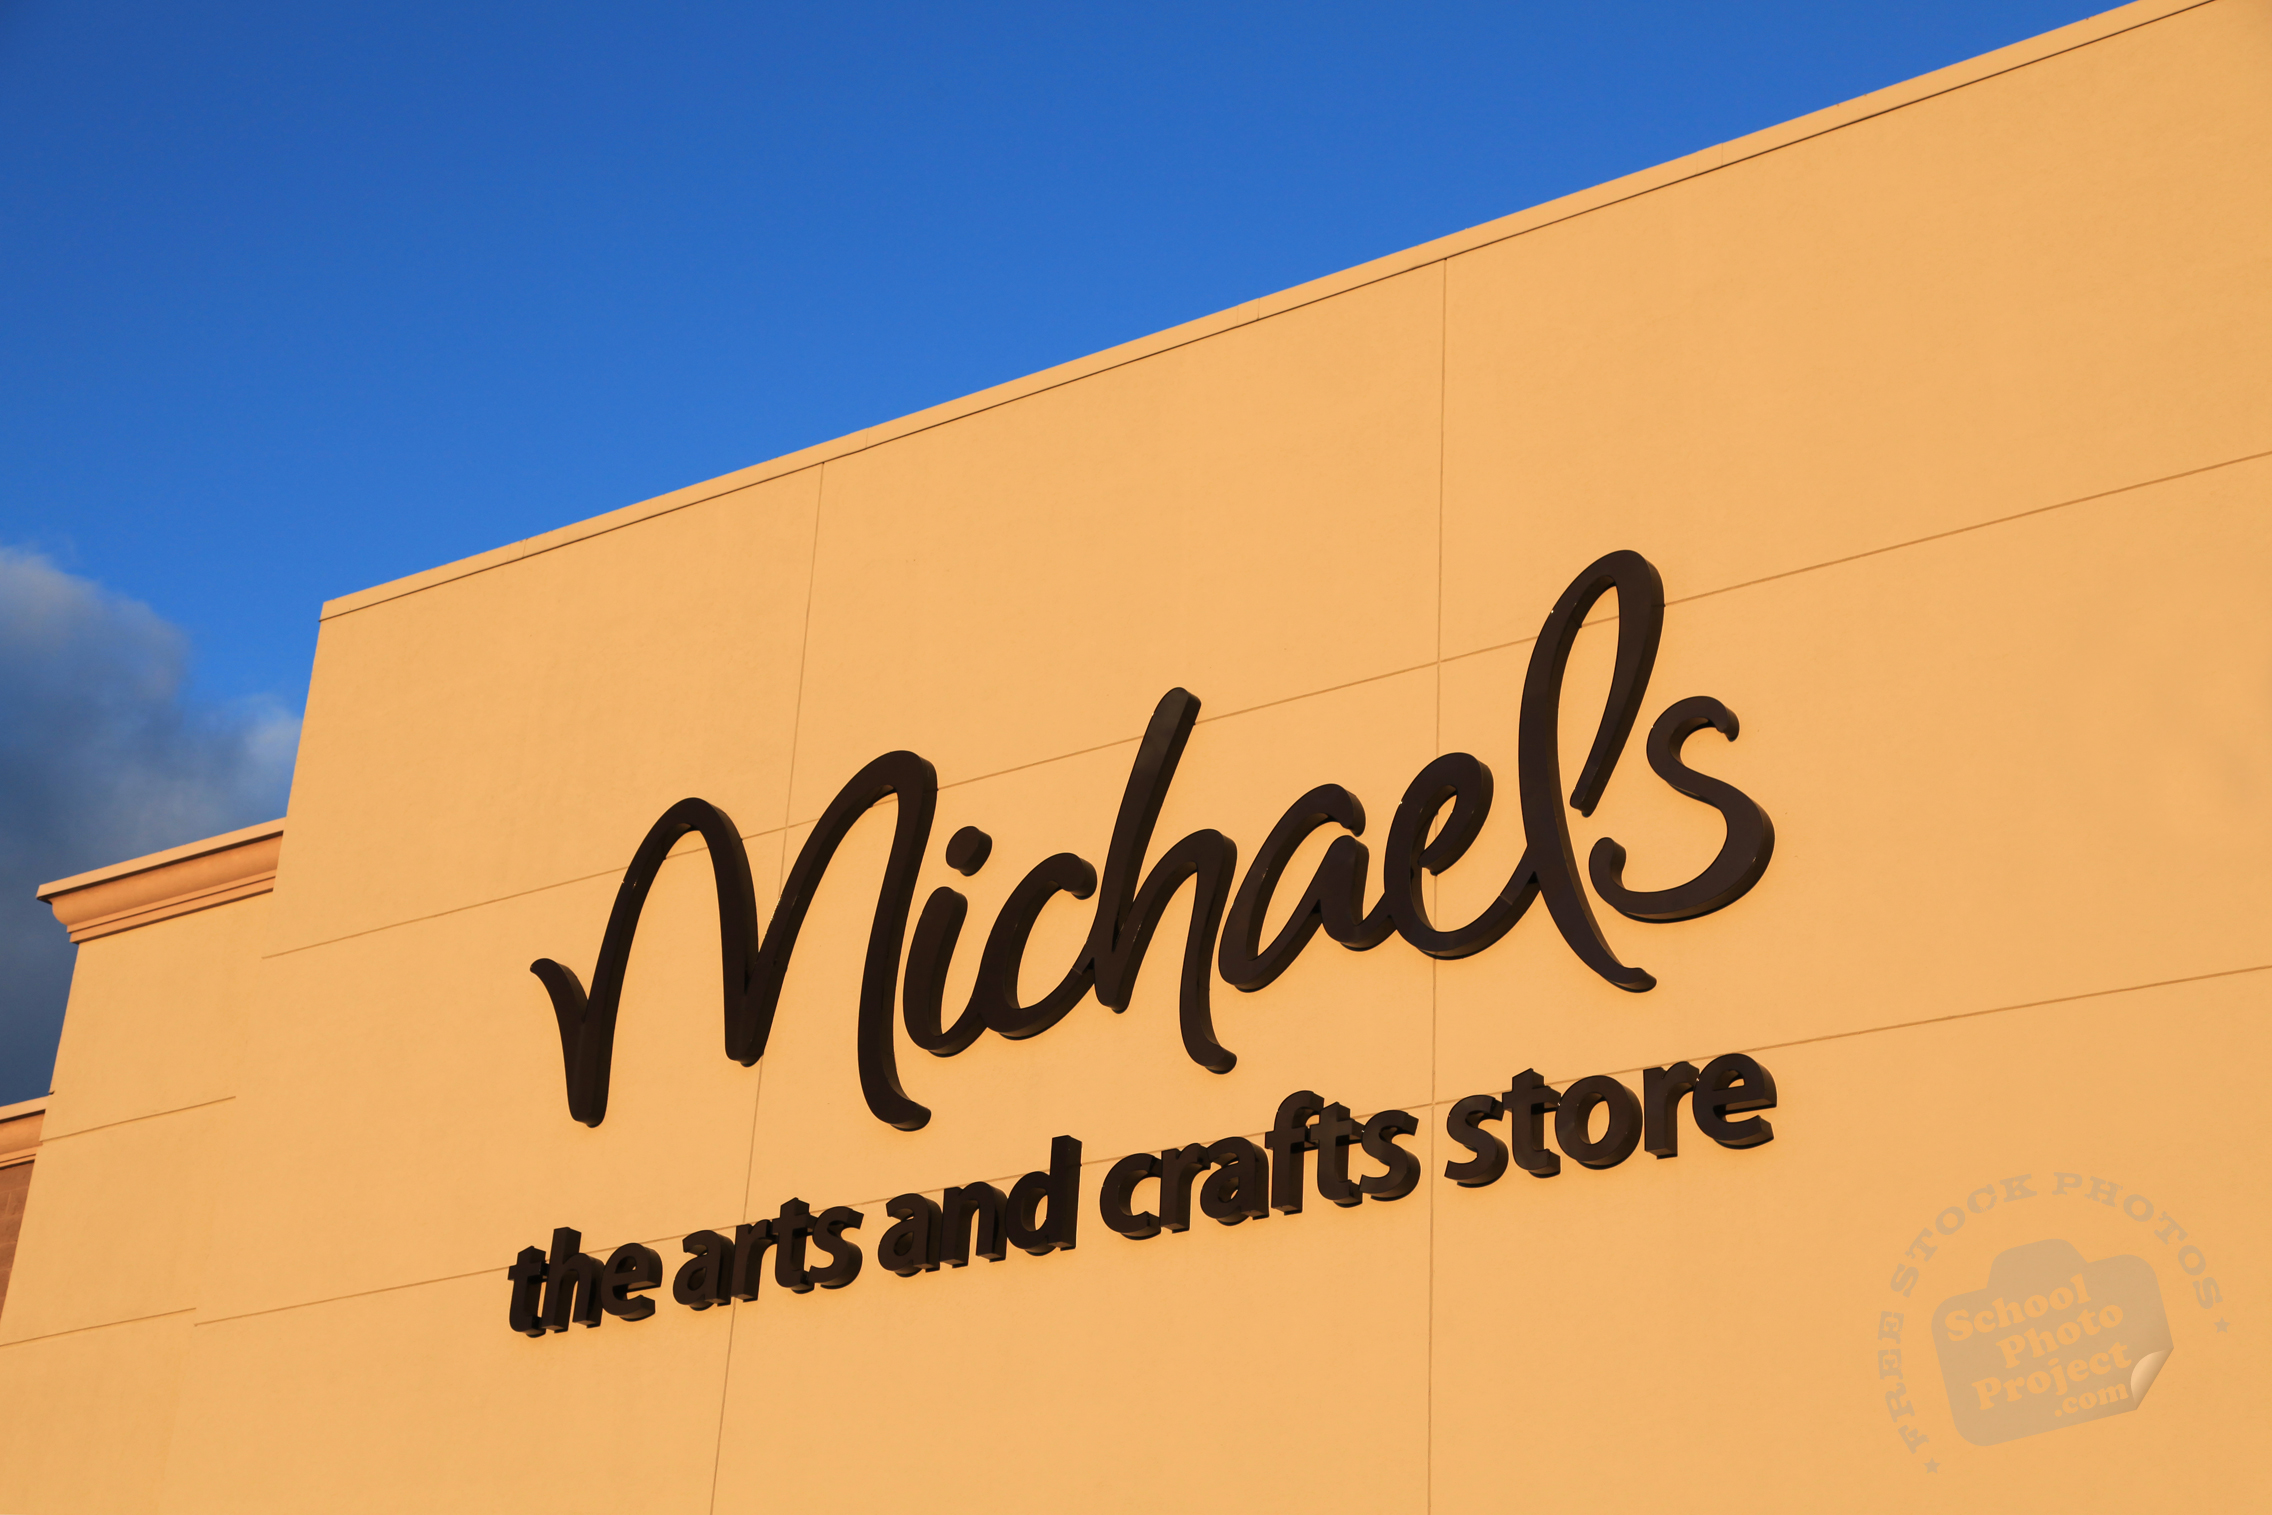 Michaels Arts And Crafts Store Free Logo Mark Stock Photo